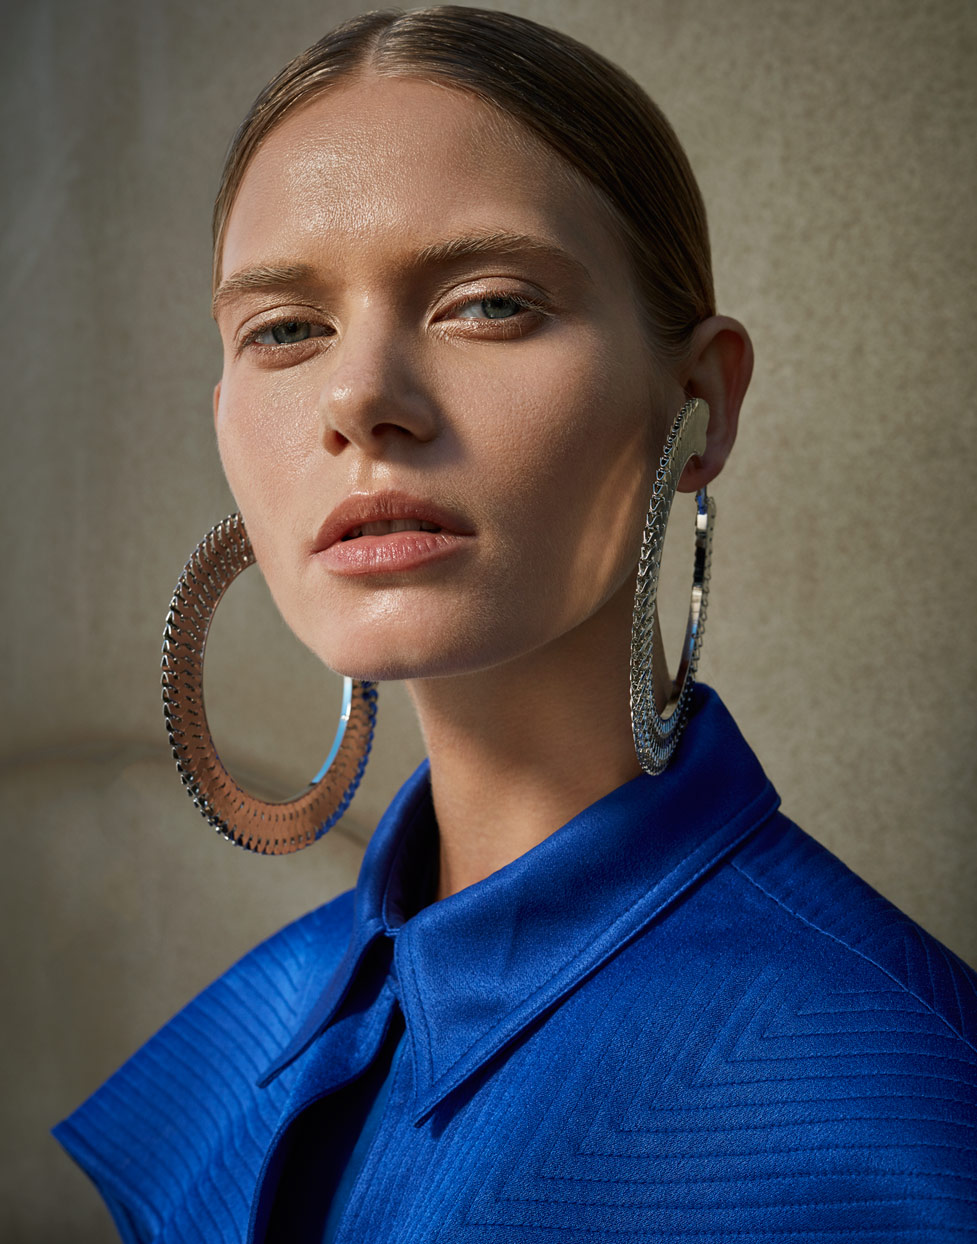 Portrait of woman with hair parted in the middle wearing large silver hoop earrings and blue collar top - Mark DeLong: Fashion Gallery